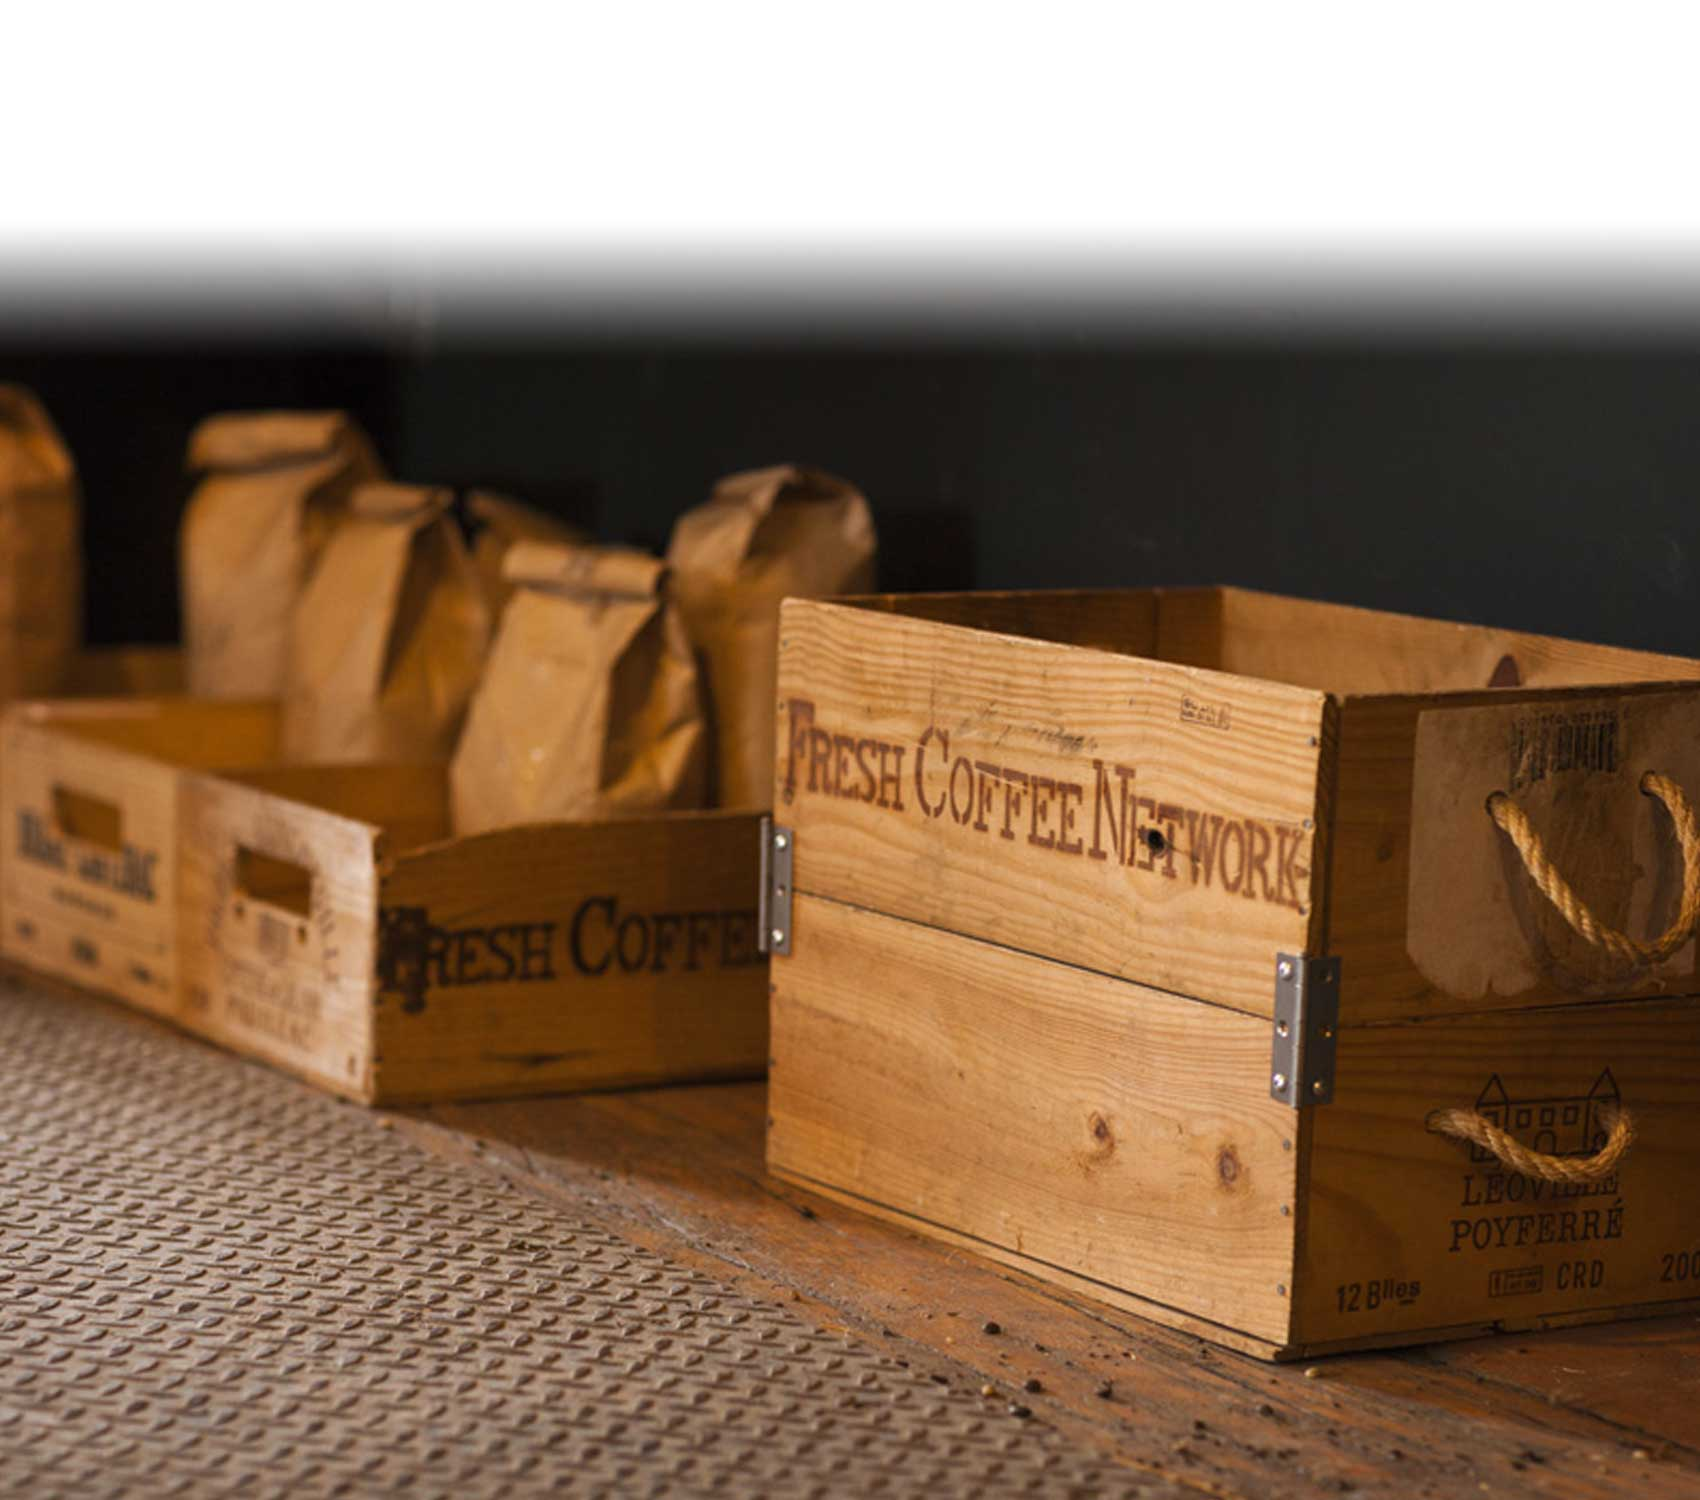 Fresh Roasted coffee wooden crates by Fresh Coffee Network.